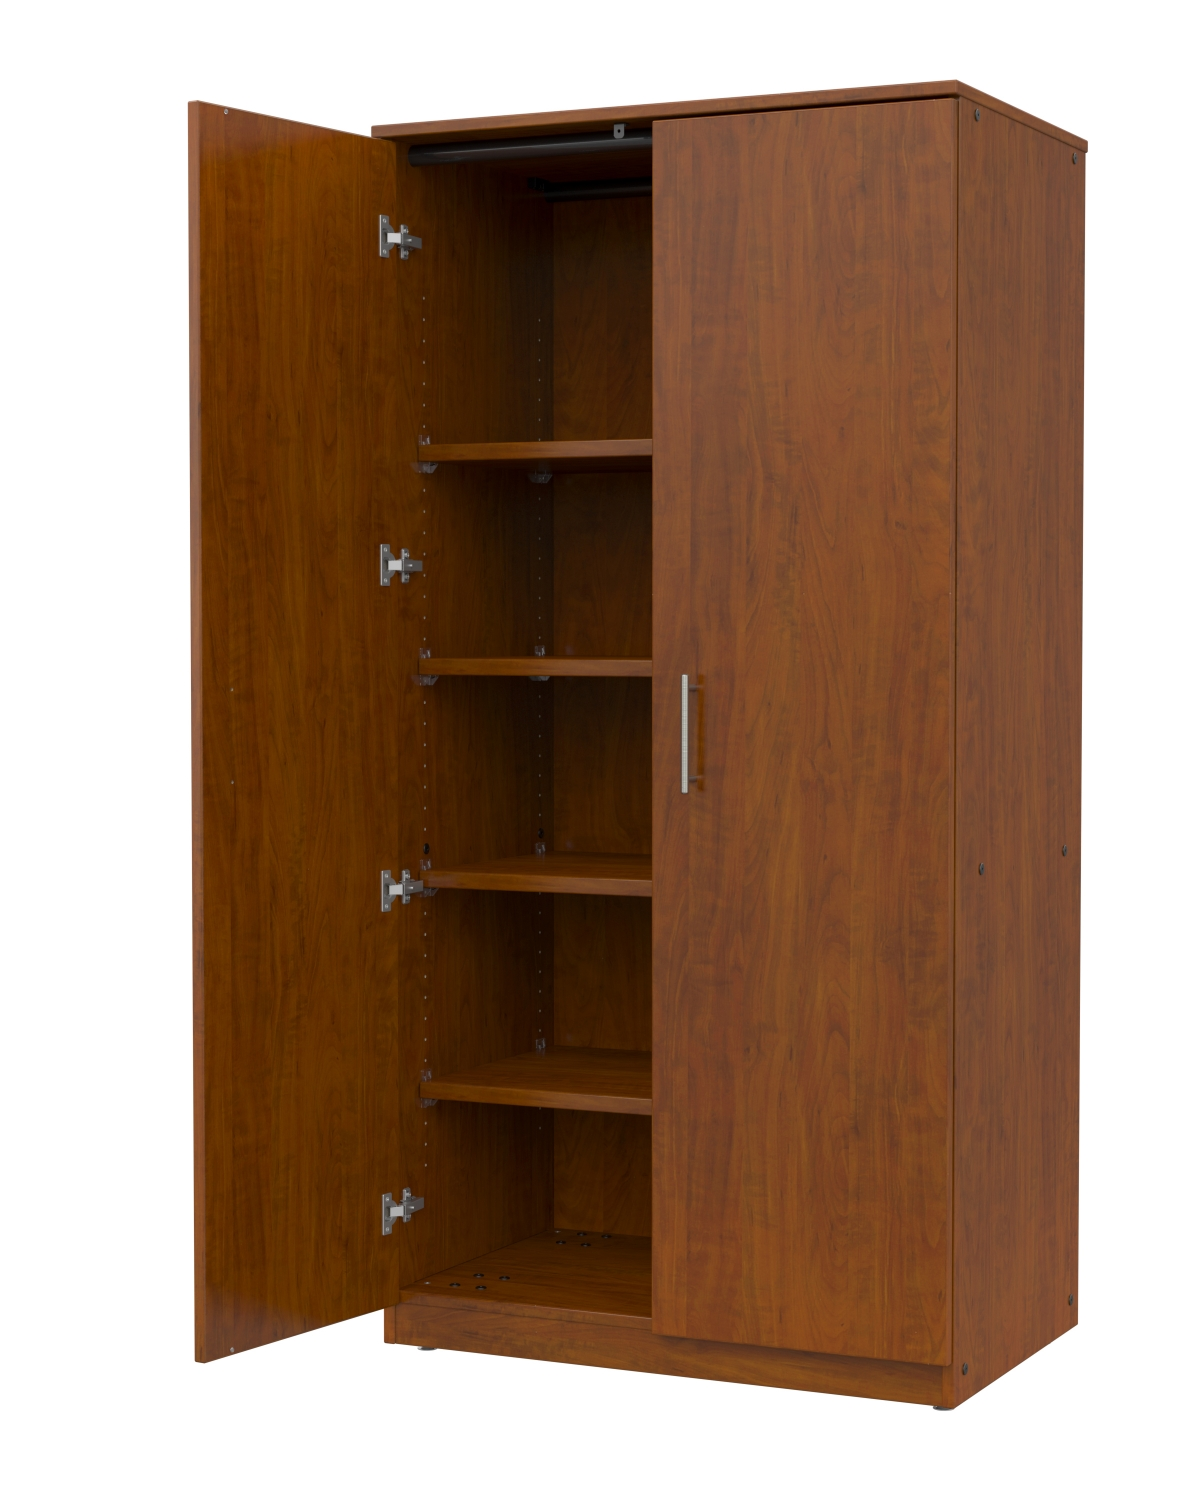 General Storage Cabinet Marco Group Inc